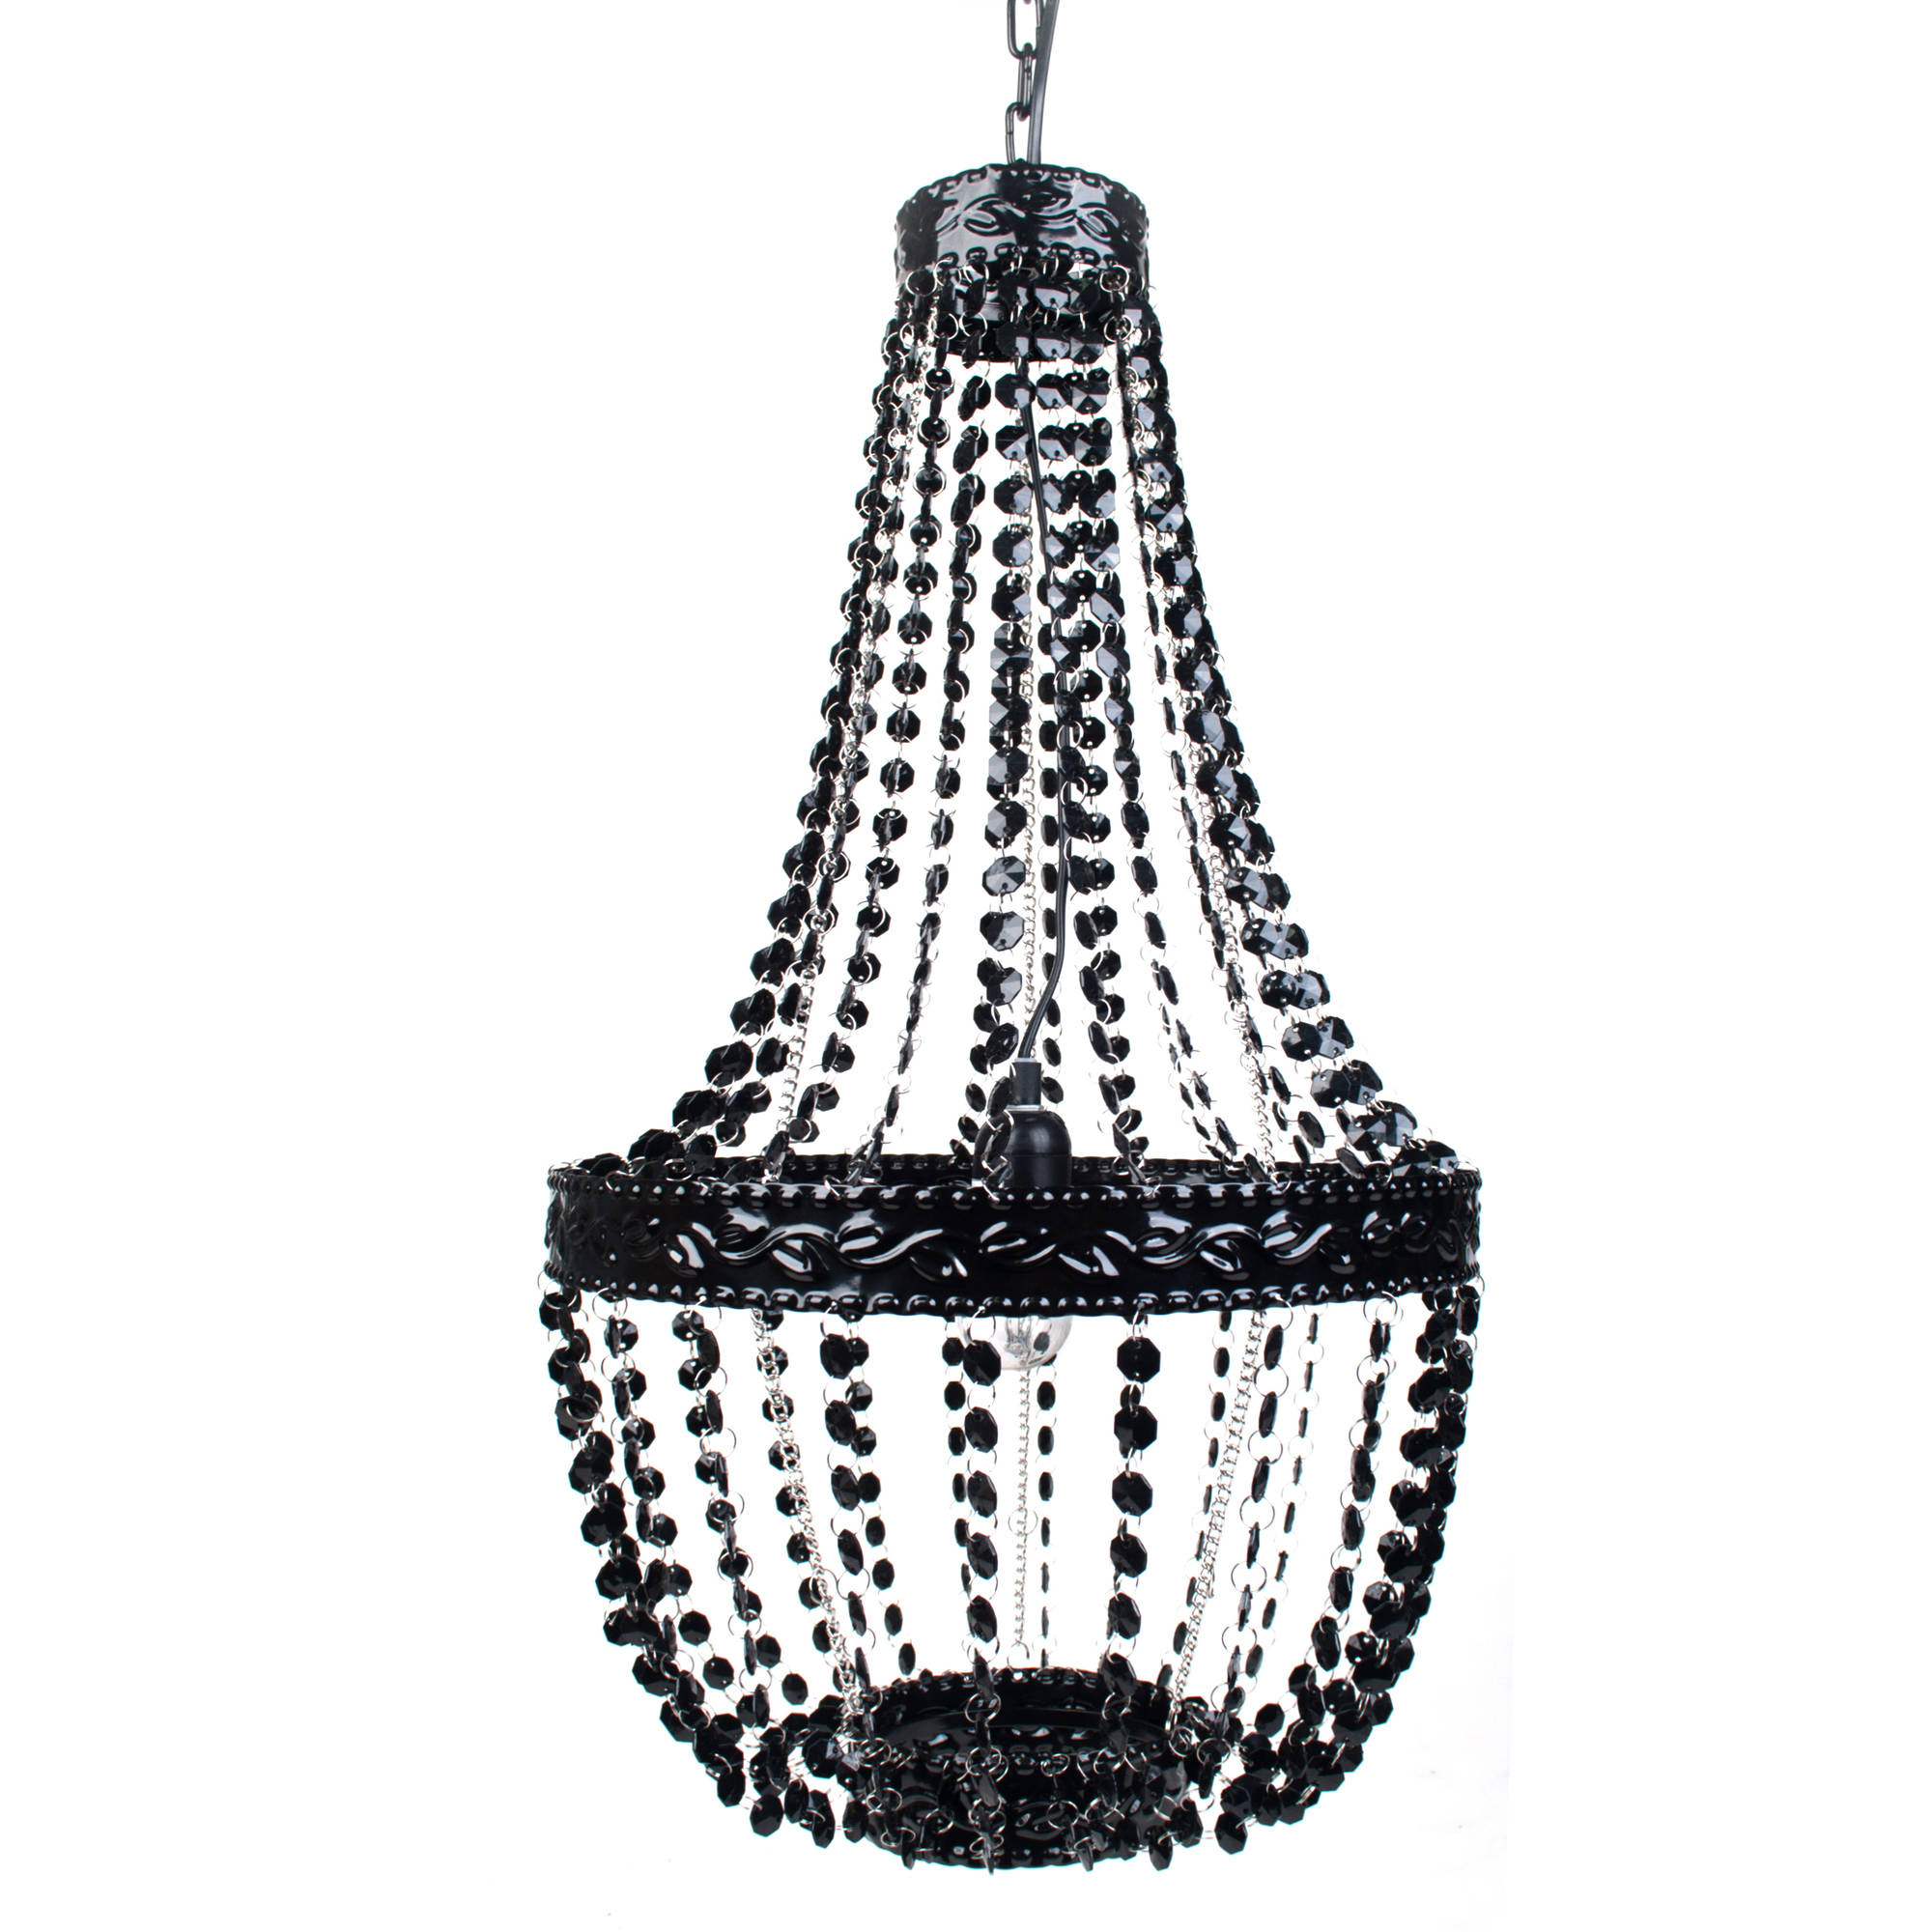 Tadpoles Beaded Chandelier, Black Onyx